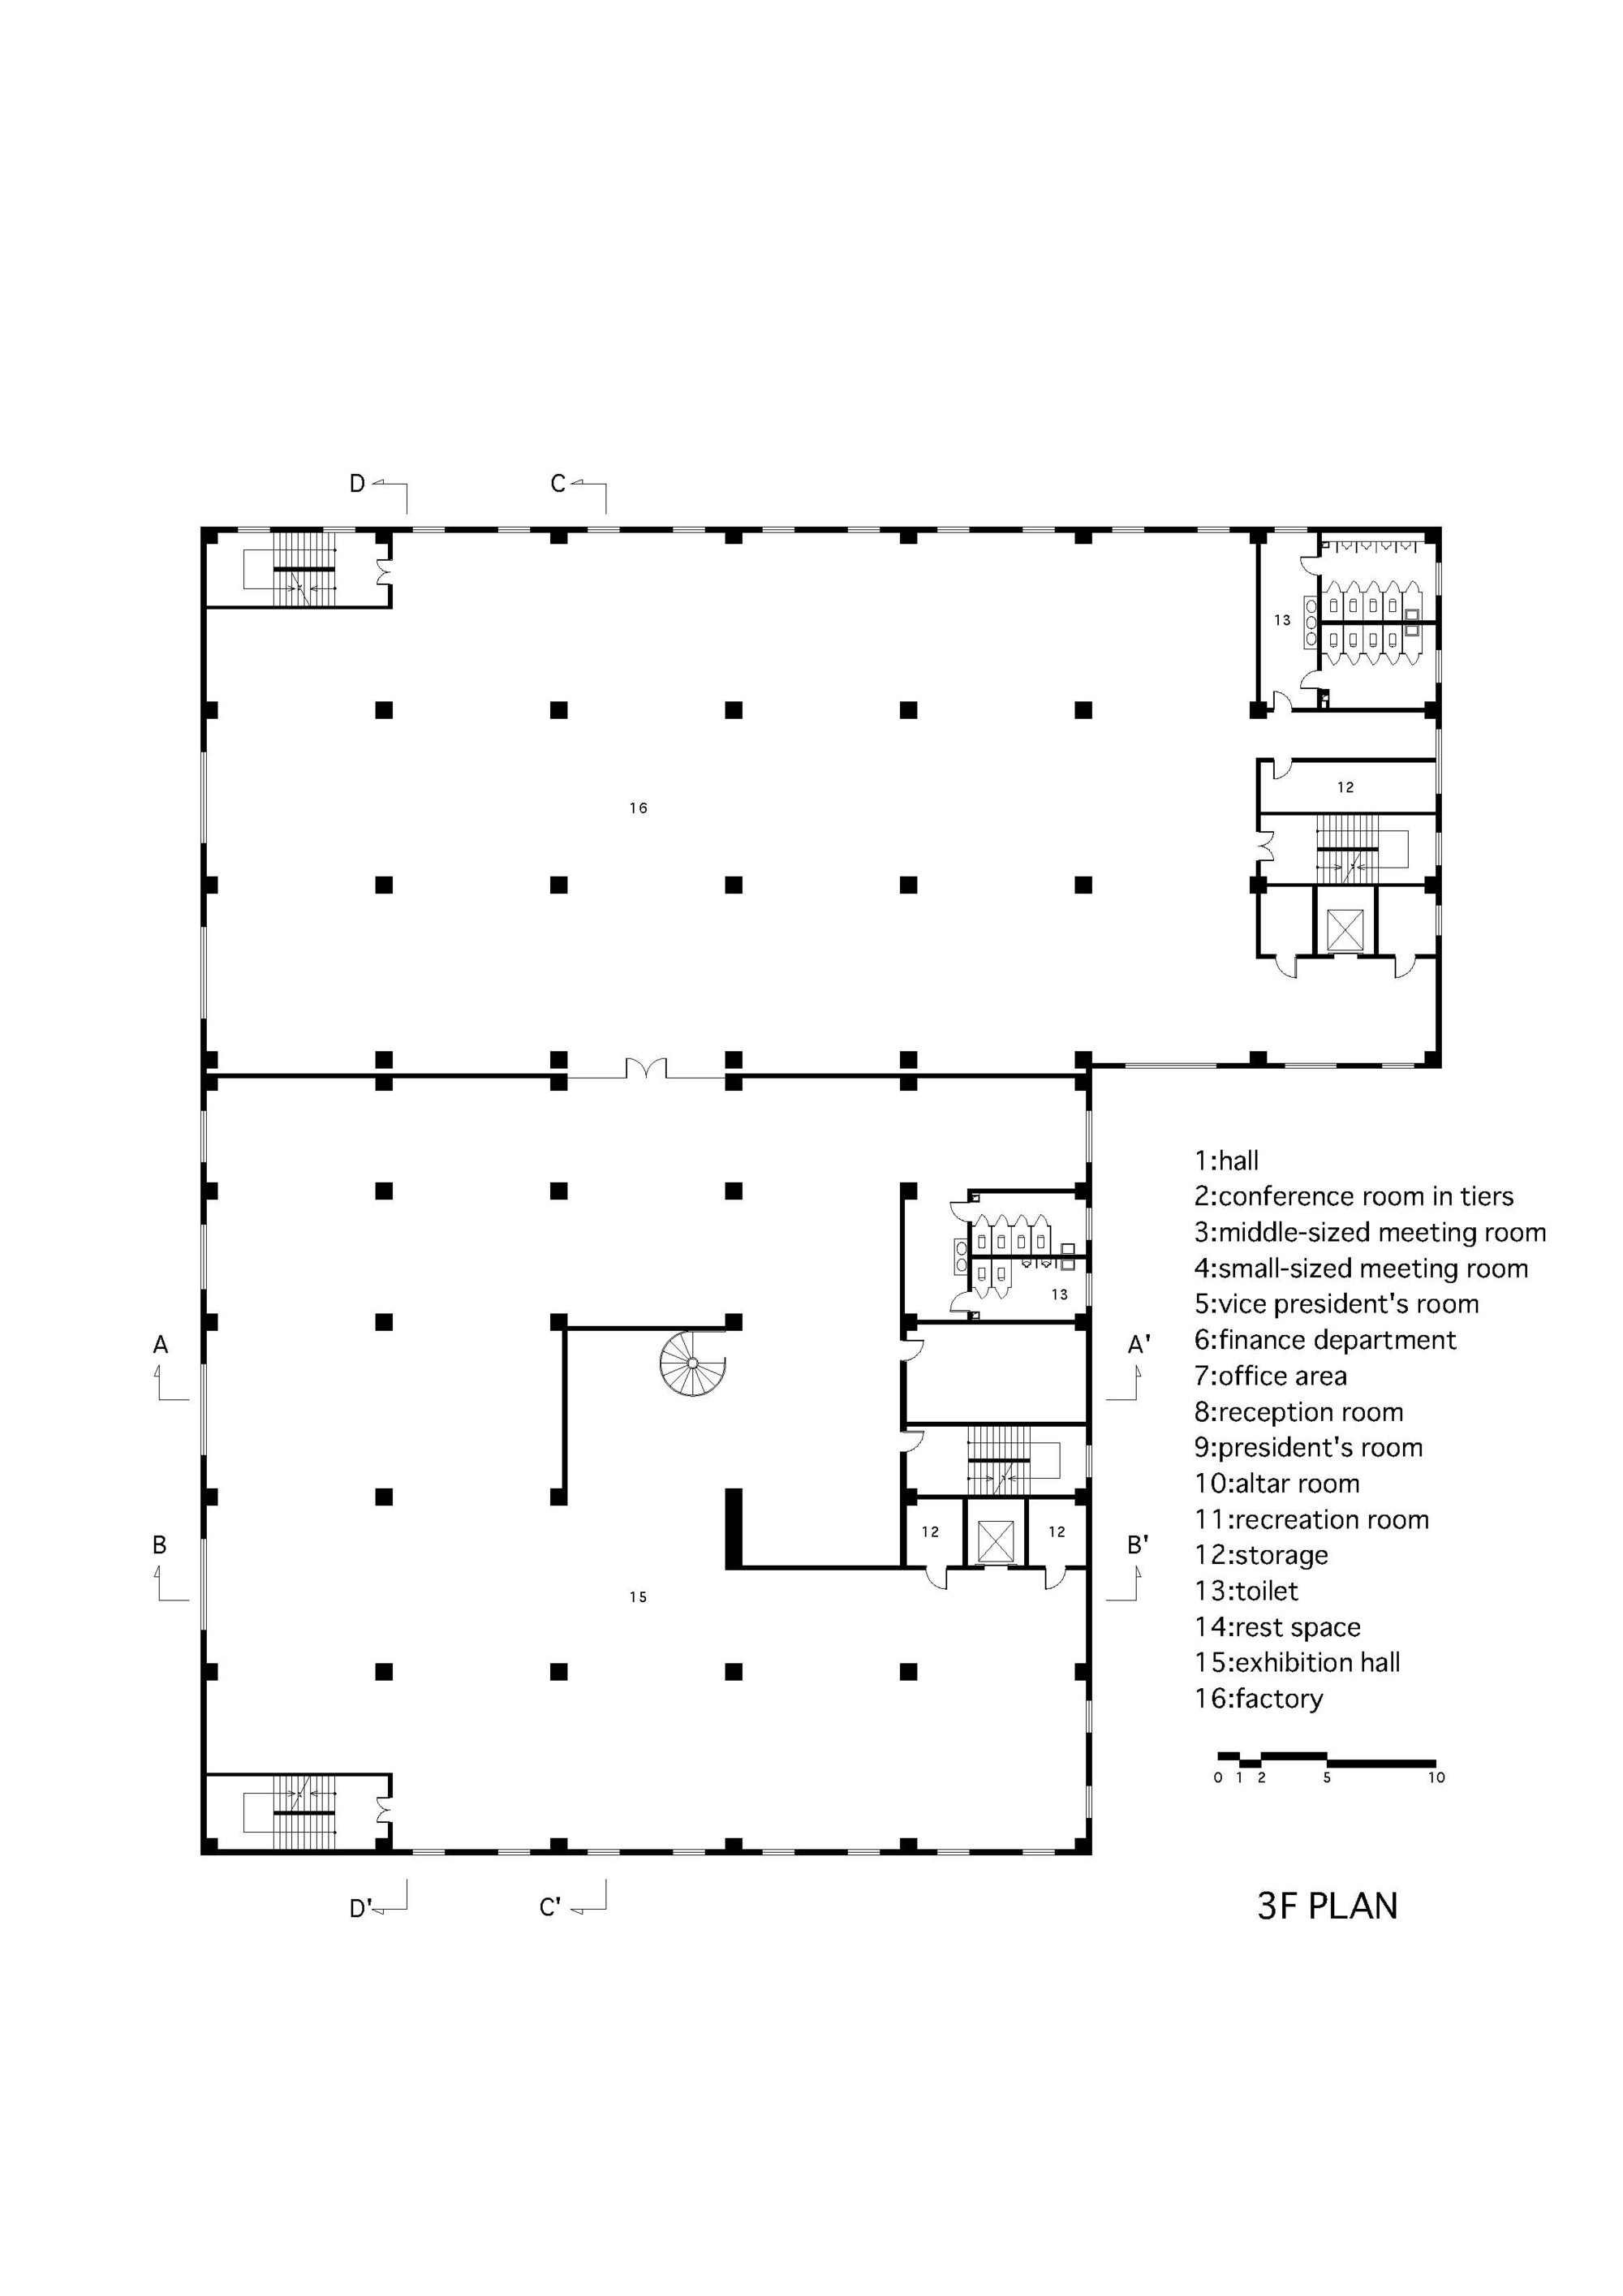 gallery of daxing factory conversion nie yong yoshimasa daxing factory conversion third floor plan